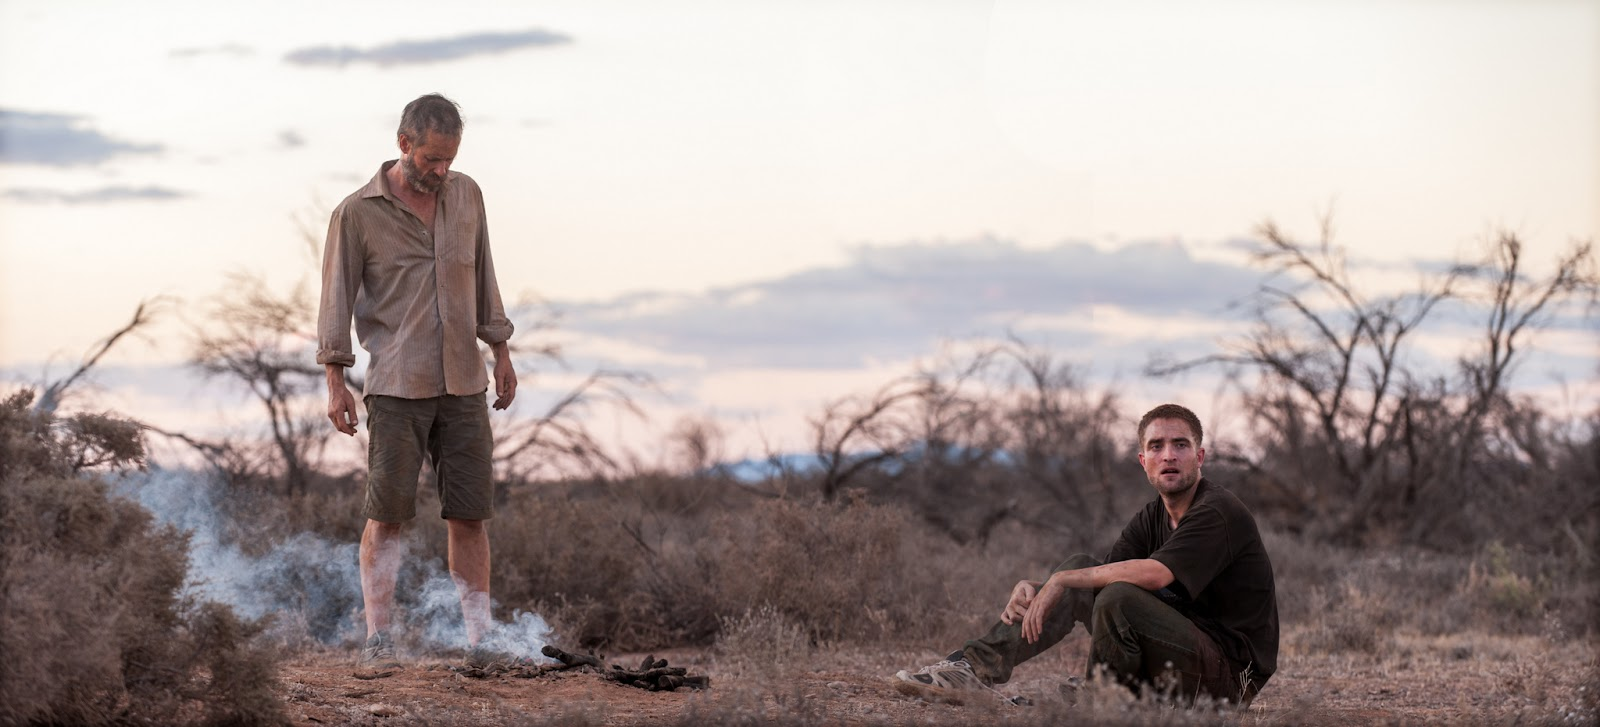 The Rover Guy Pearce & Rob Pattinson go road tripping